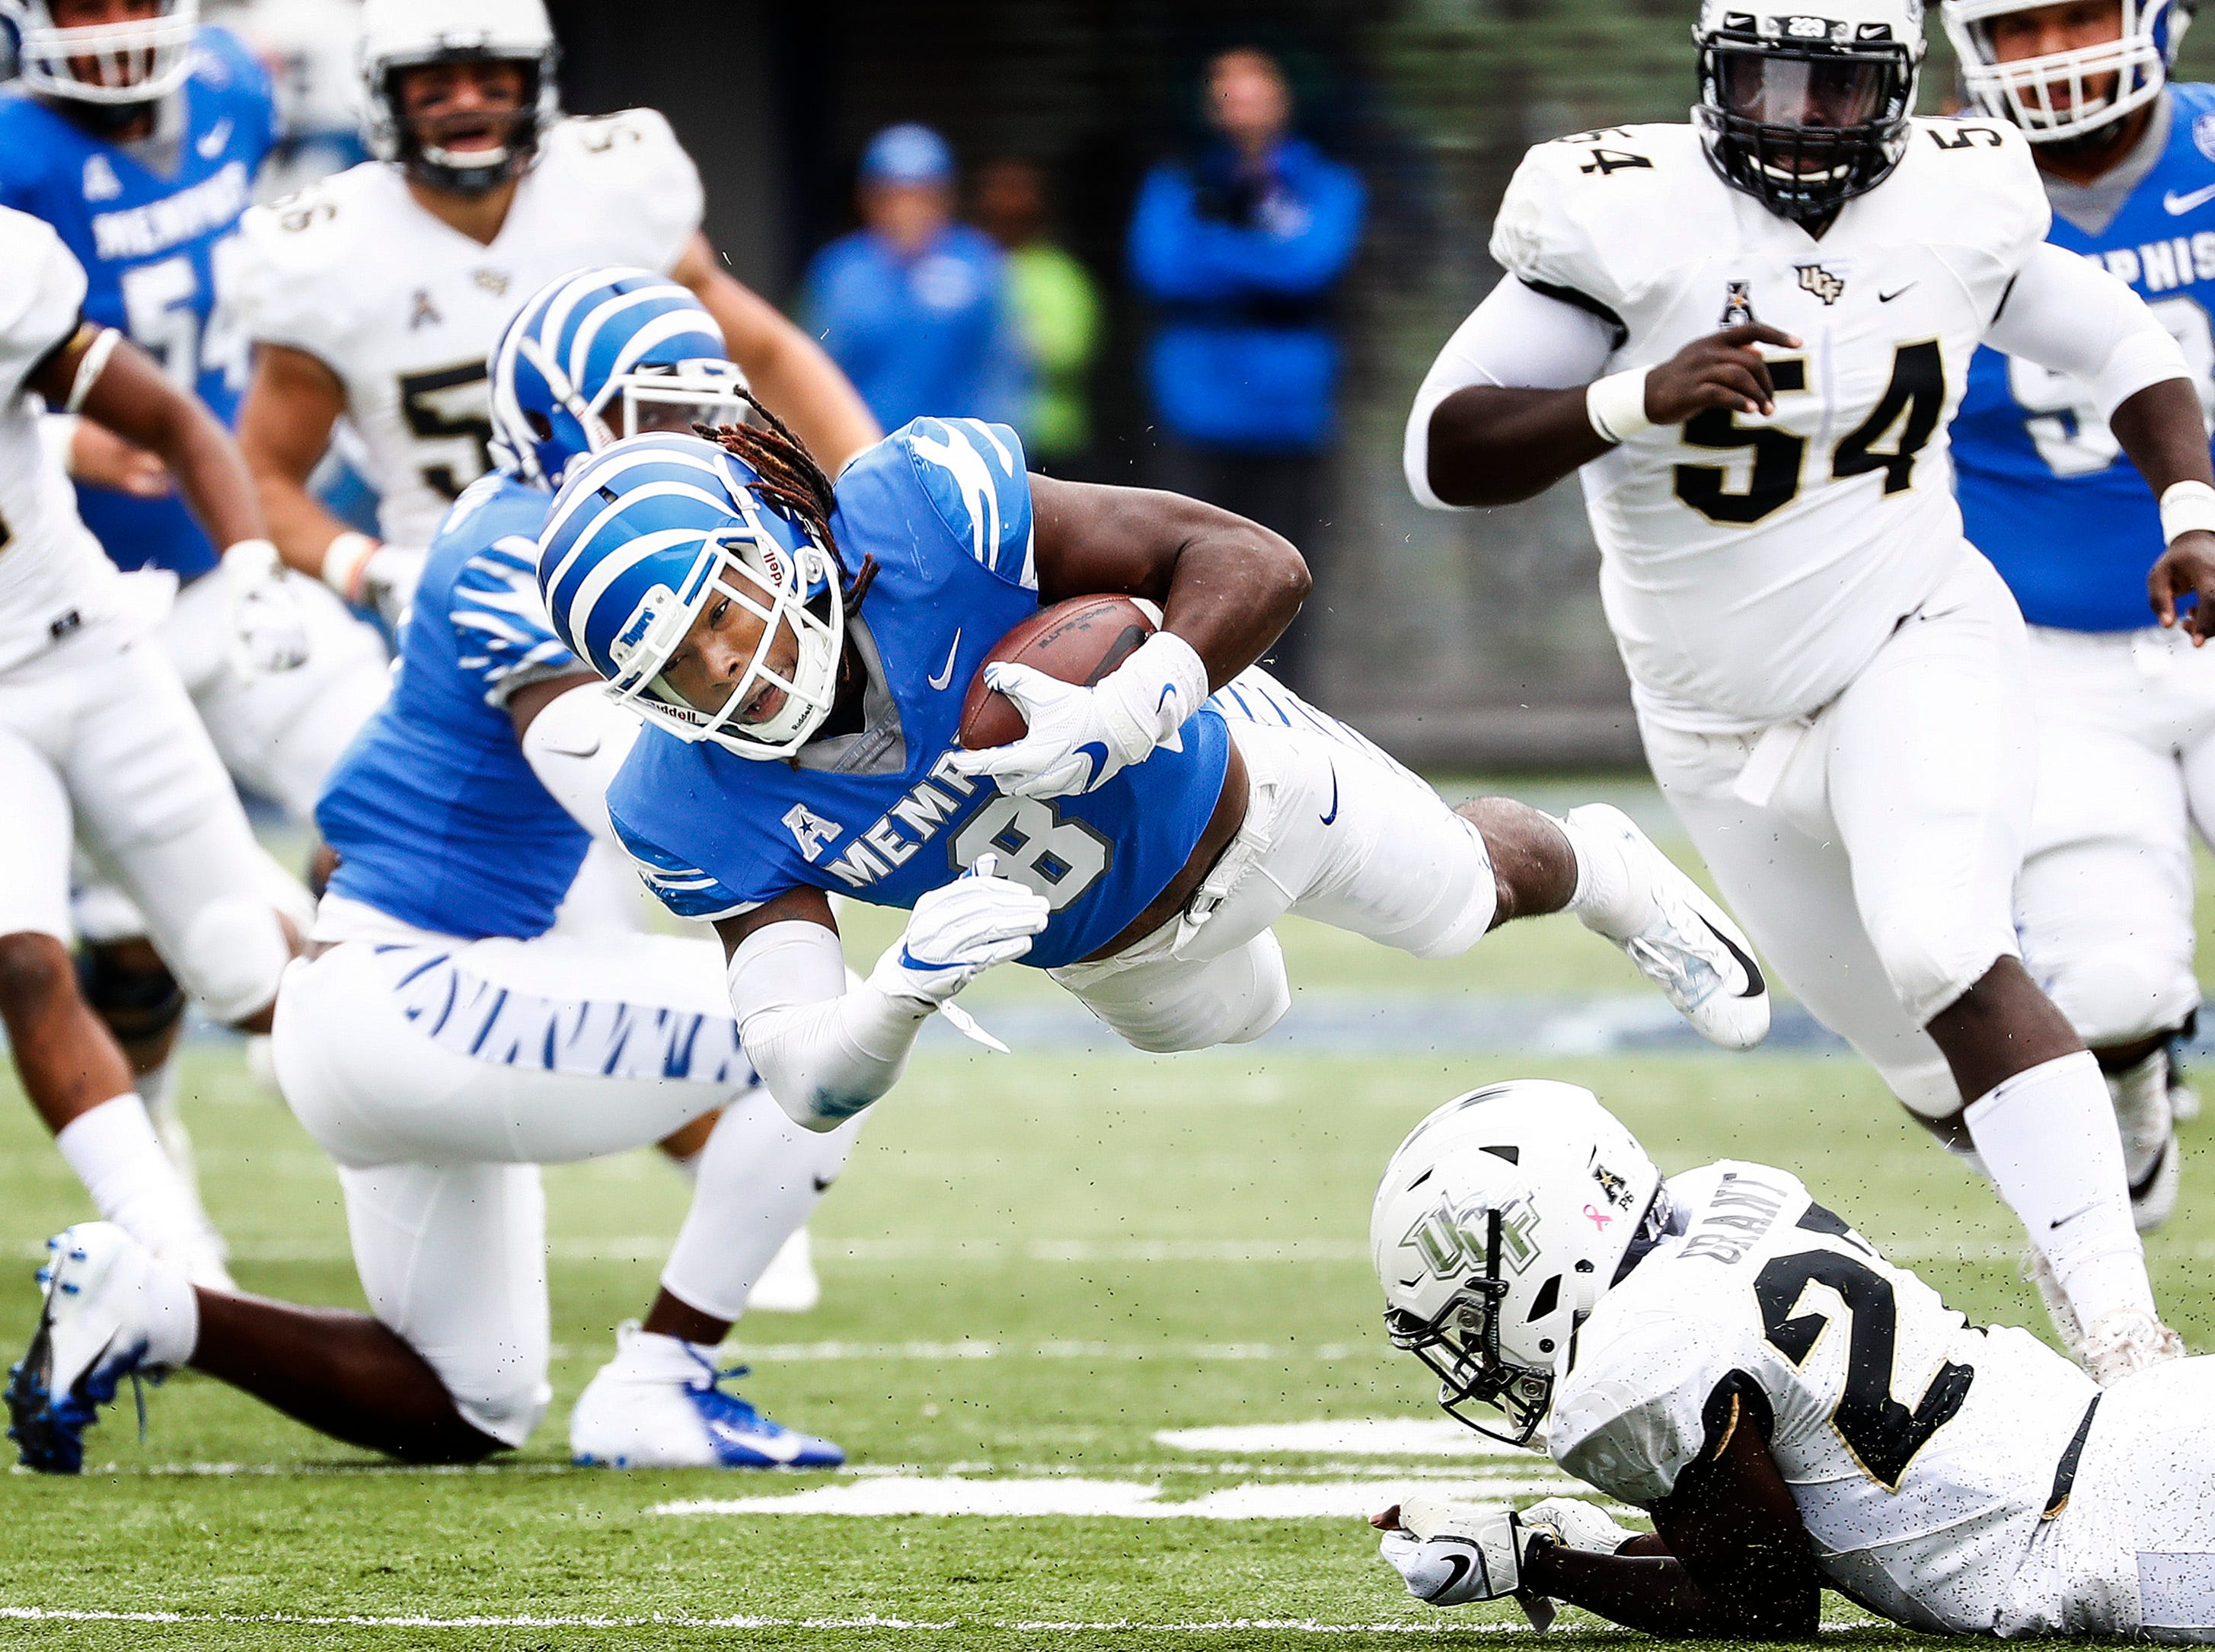 Memphis running back Darrell Henderson gains yards against the Central Florida defense during acton in Memphis, Tenn., Saturday, October 13, 2018.